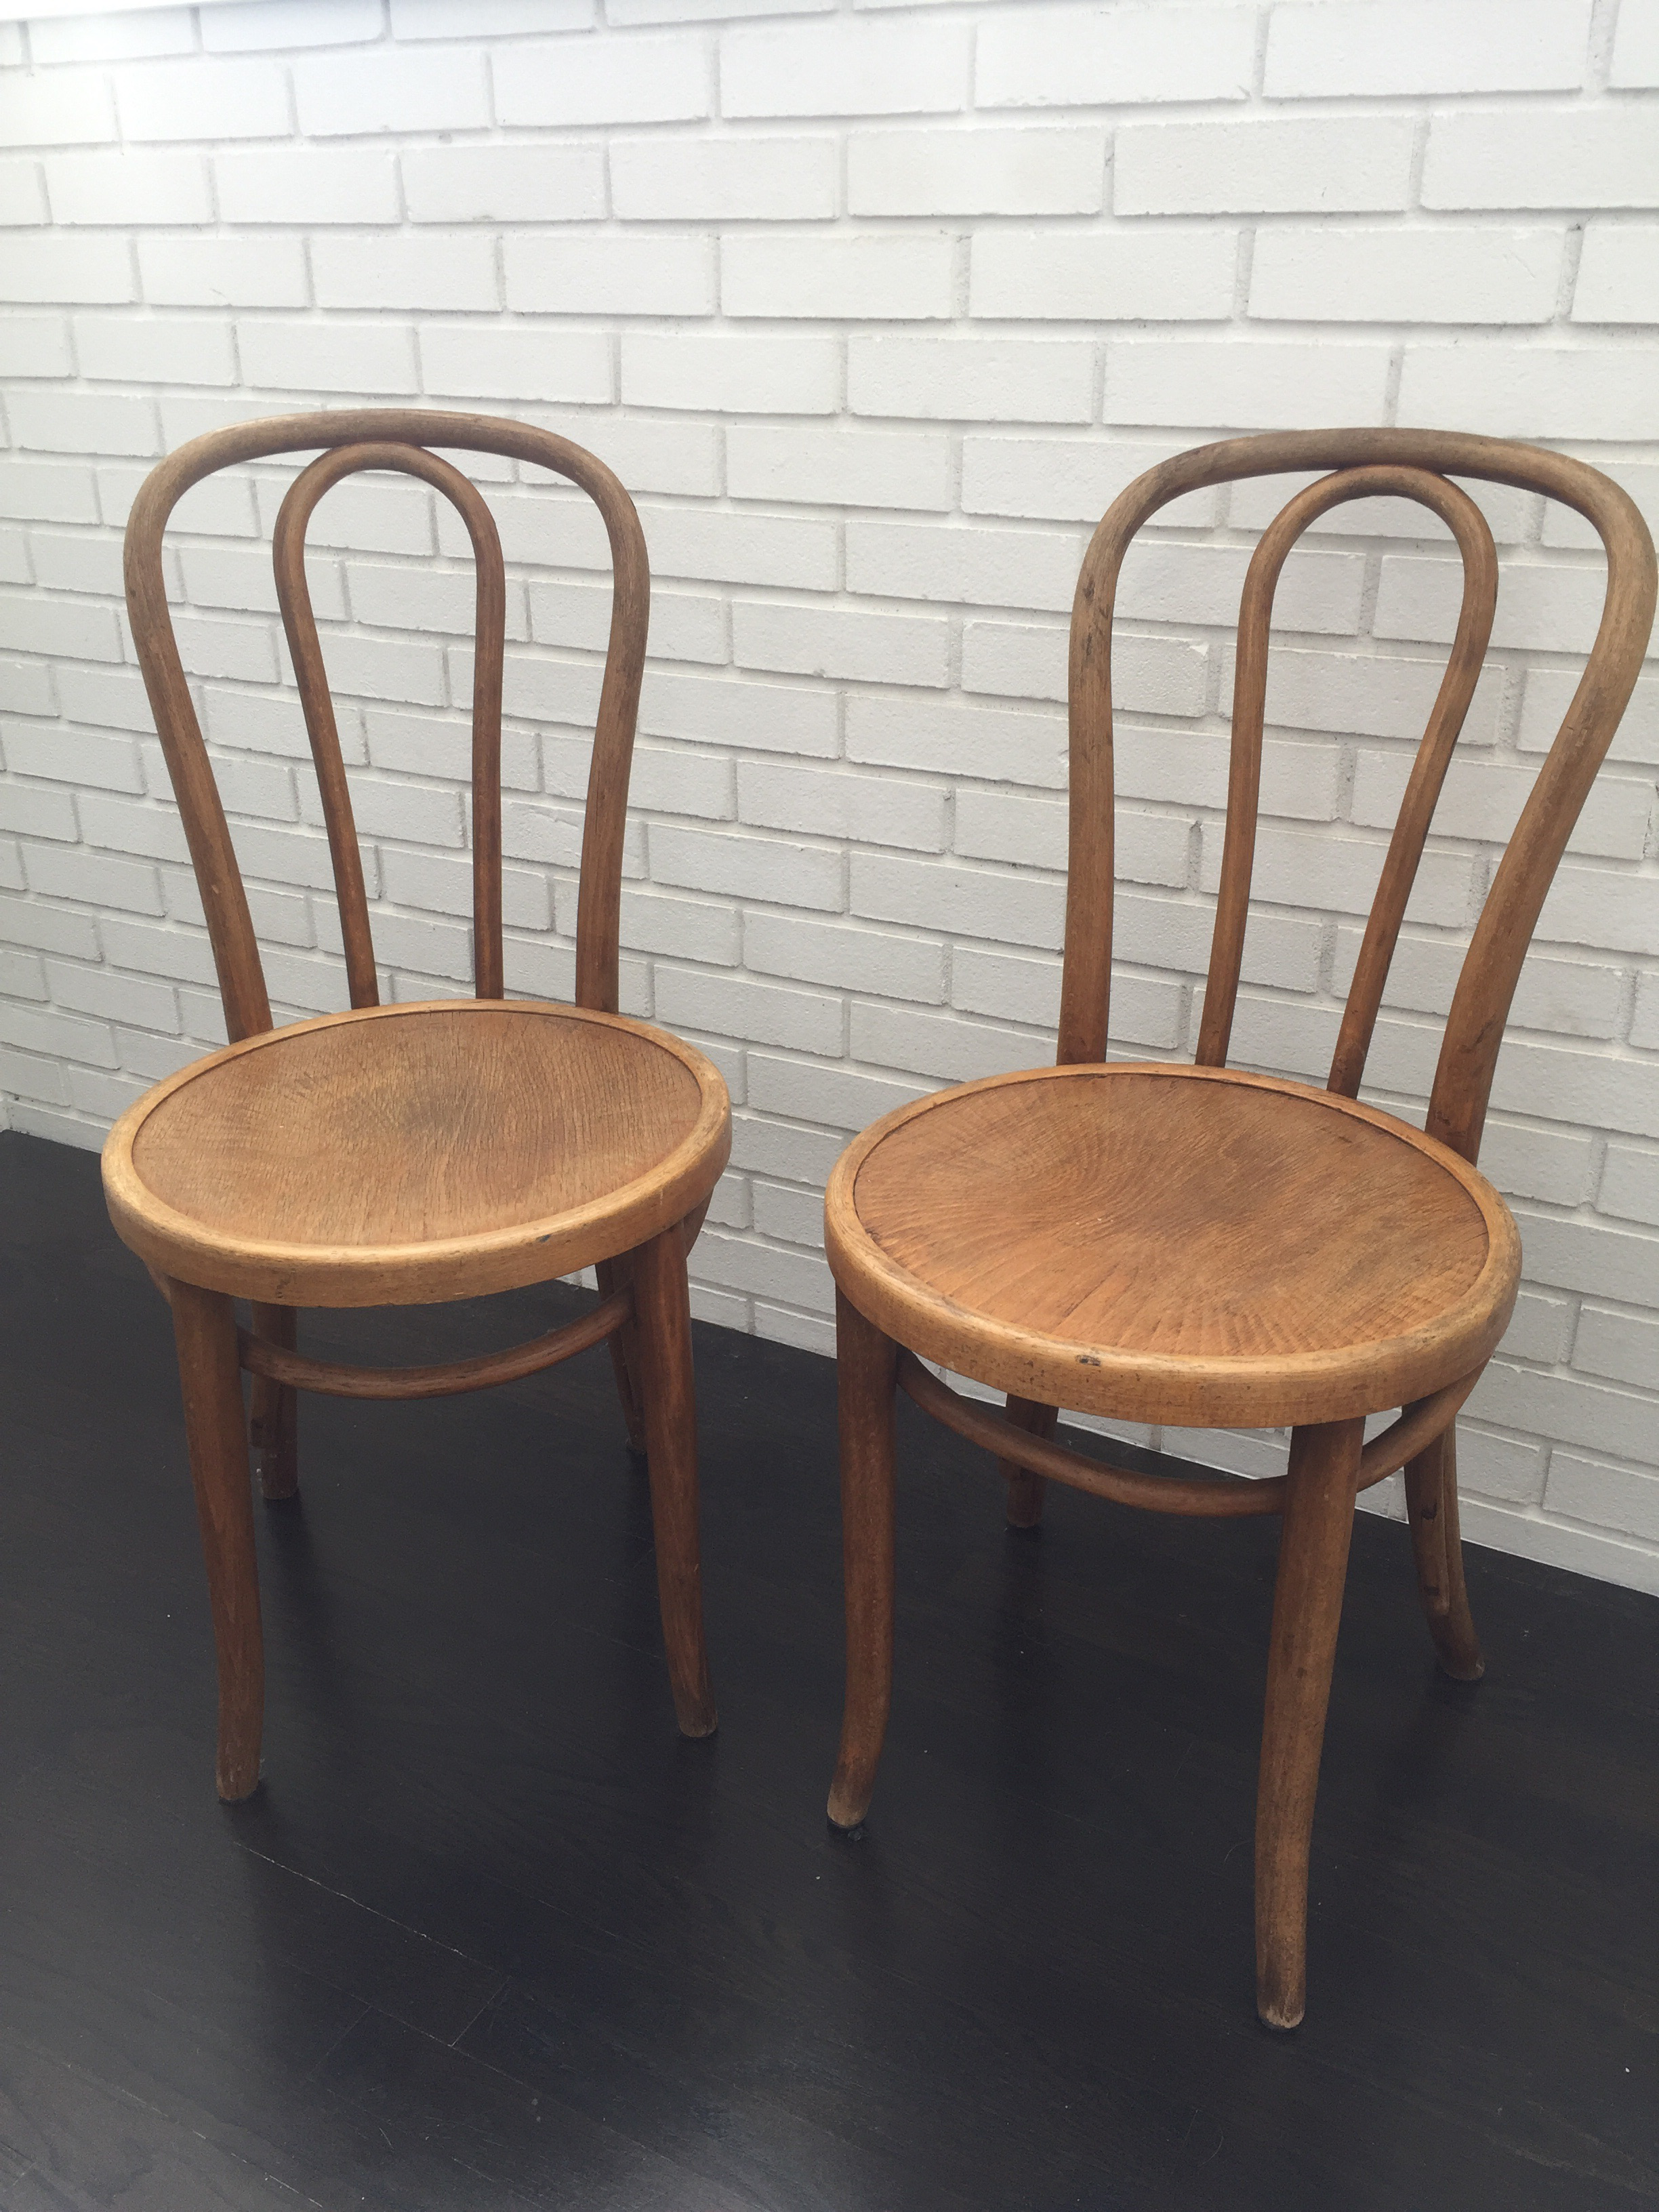 Antique Thonet No. 18 Bentwood Chairs   A Pair   Image 2 Of 7